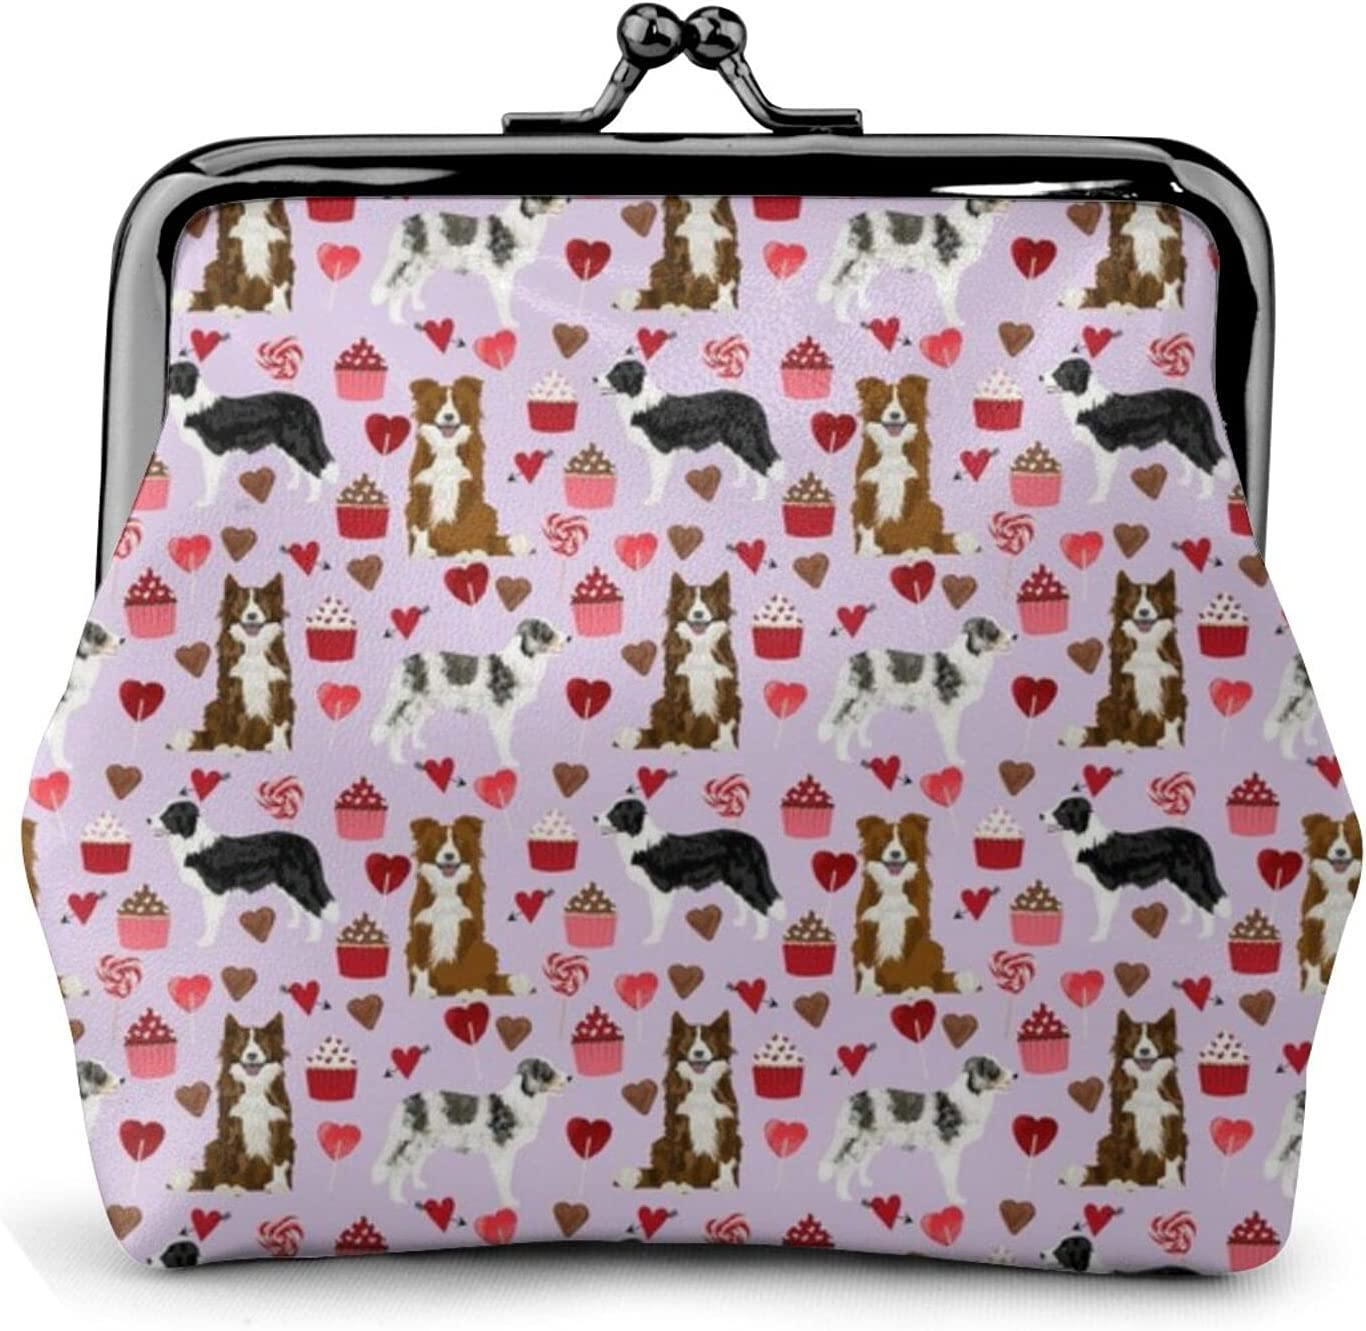 Border Collie Mixed 813 Leather Coin Purse Kiss Lock Change Pouch Vintage Clasp Closure Buckle Wallet Small Women Gift